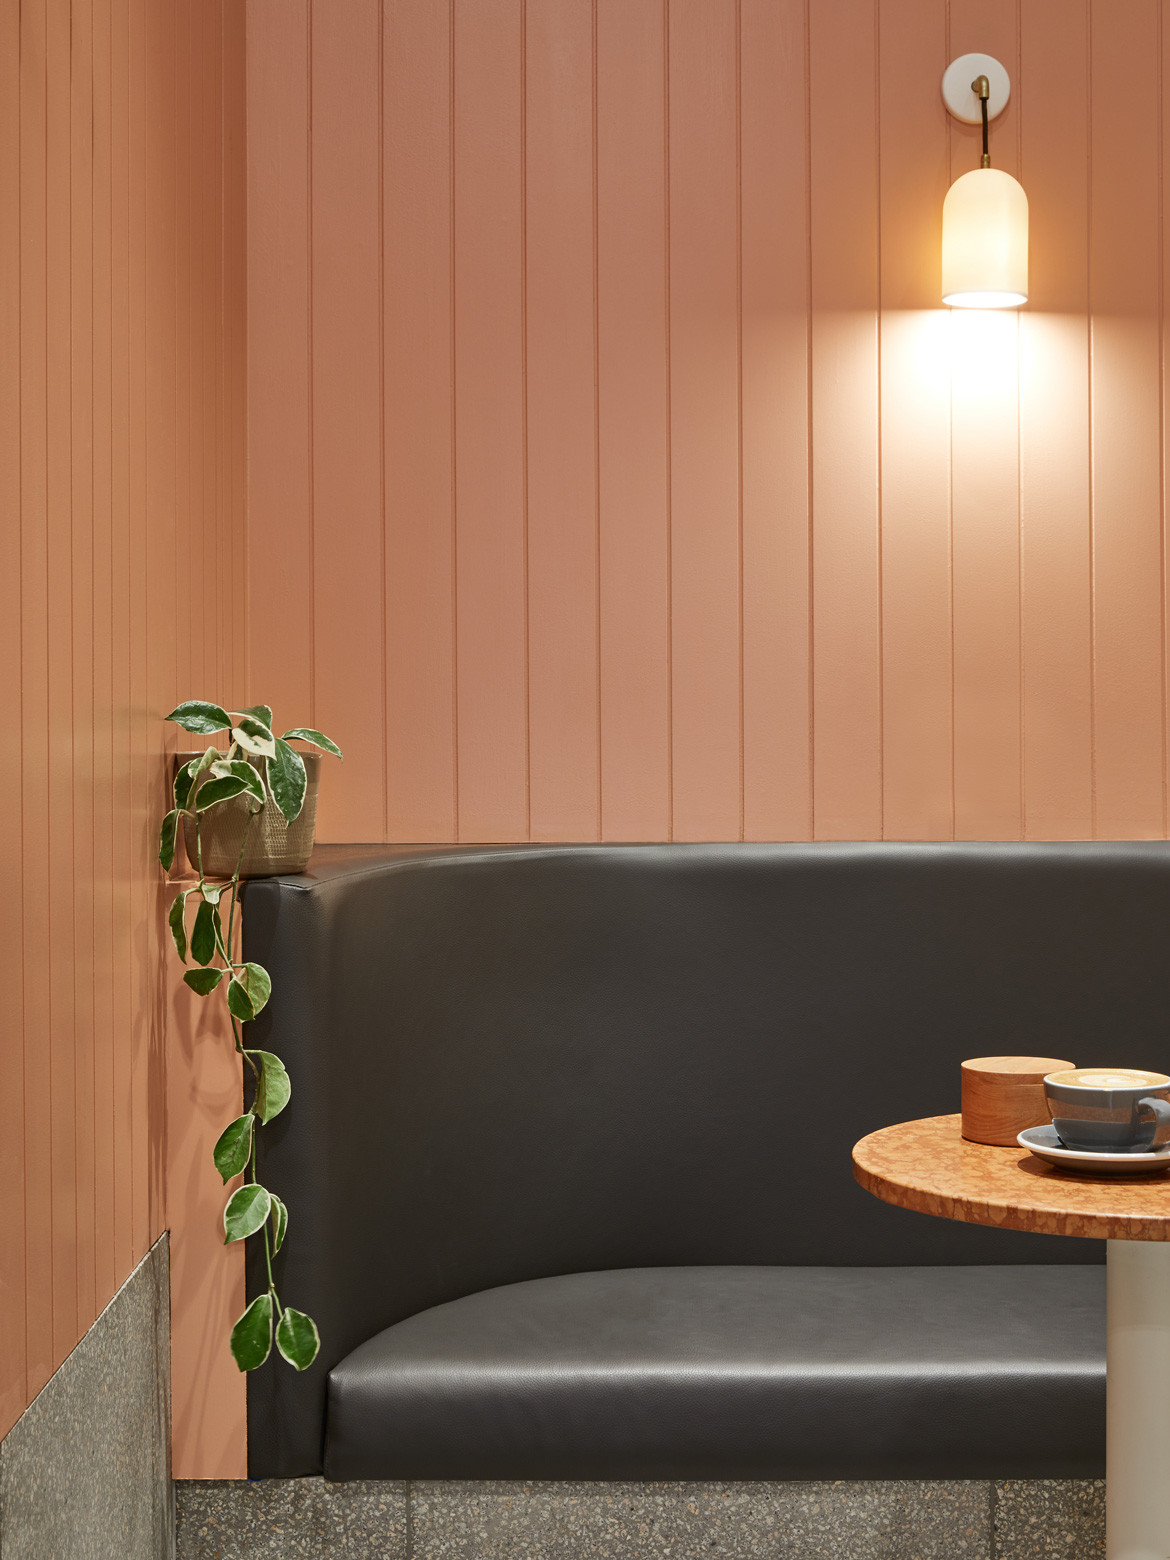 Tulip Cafe CoLab Design Studio Booth seating